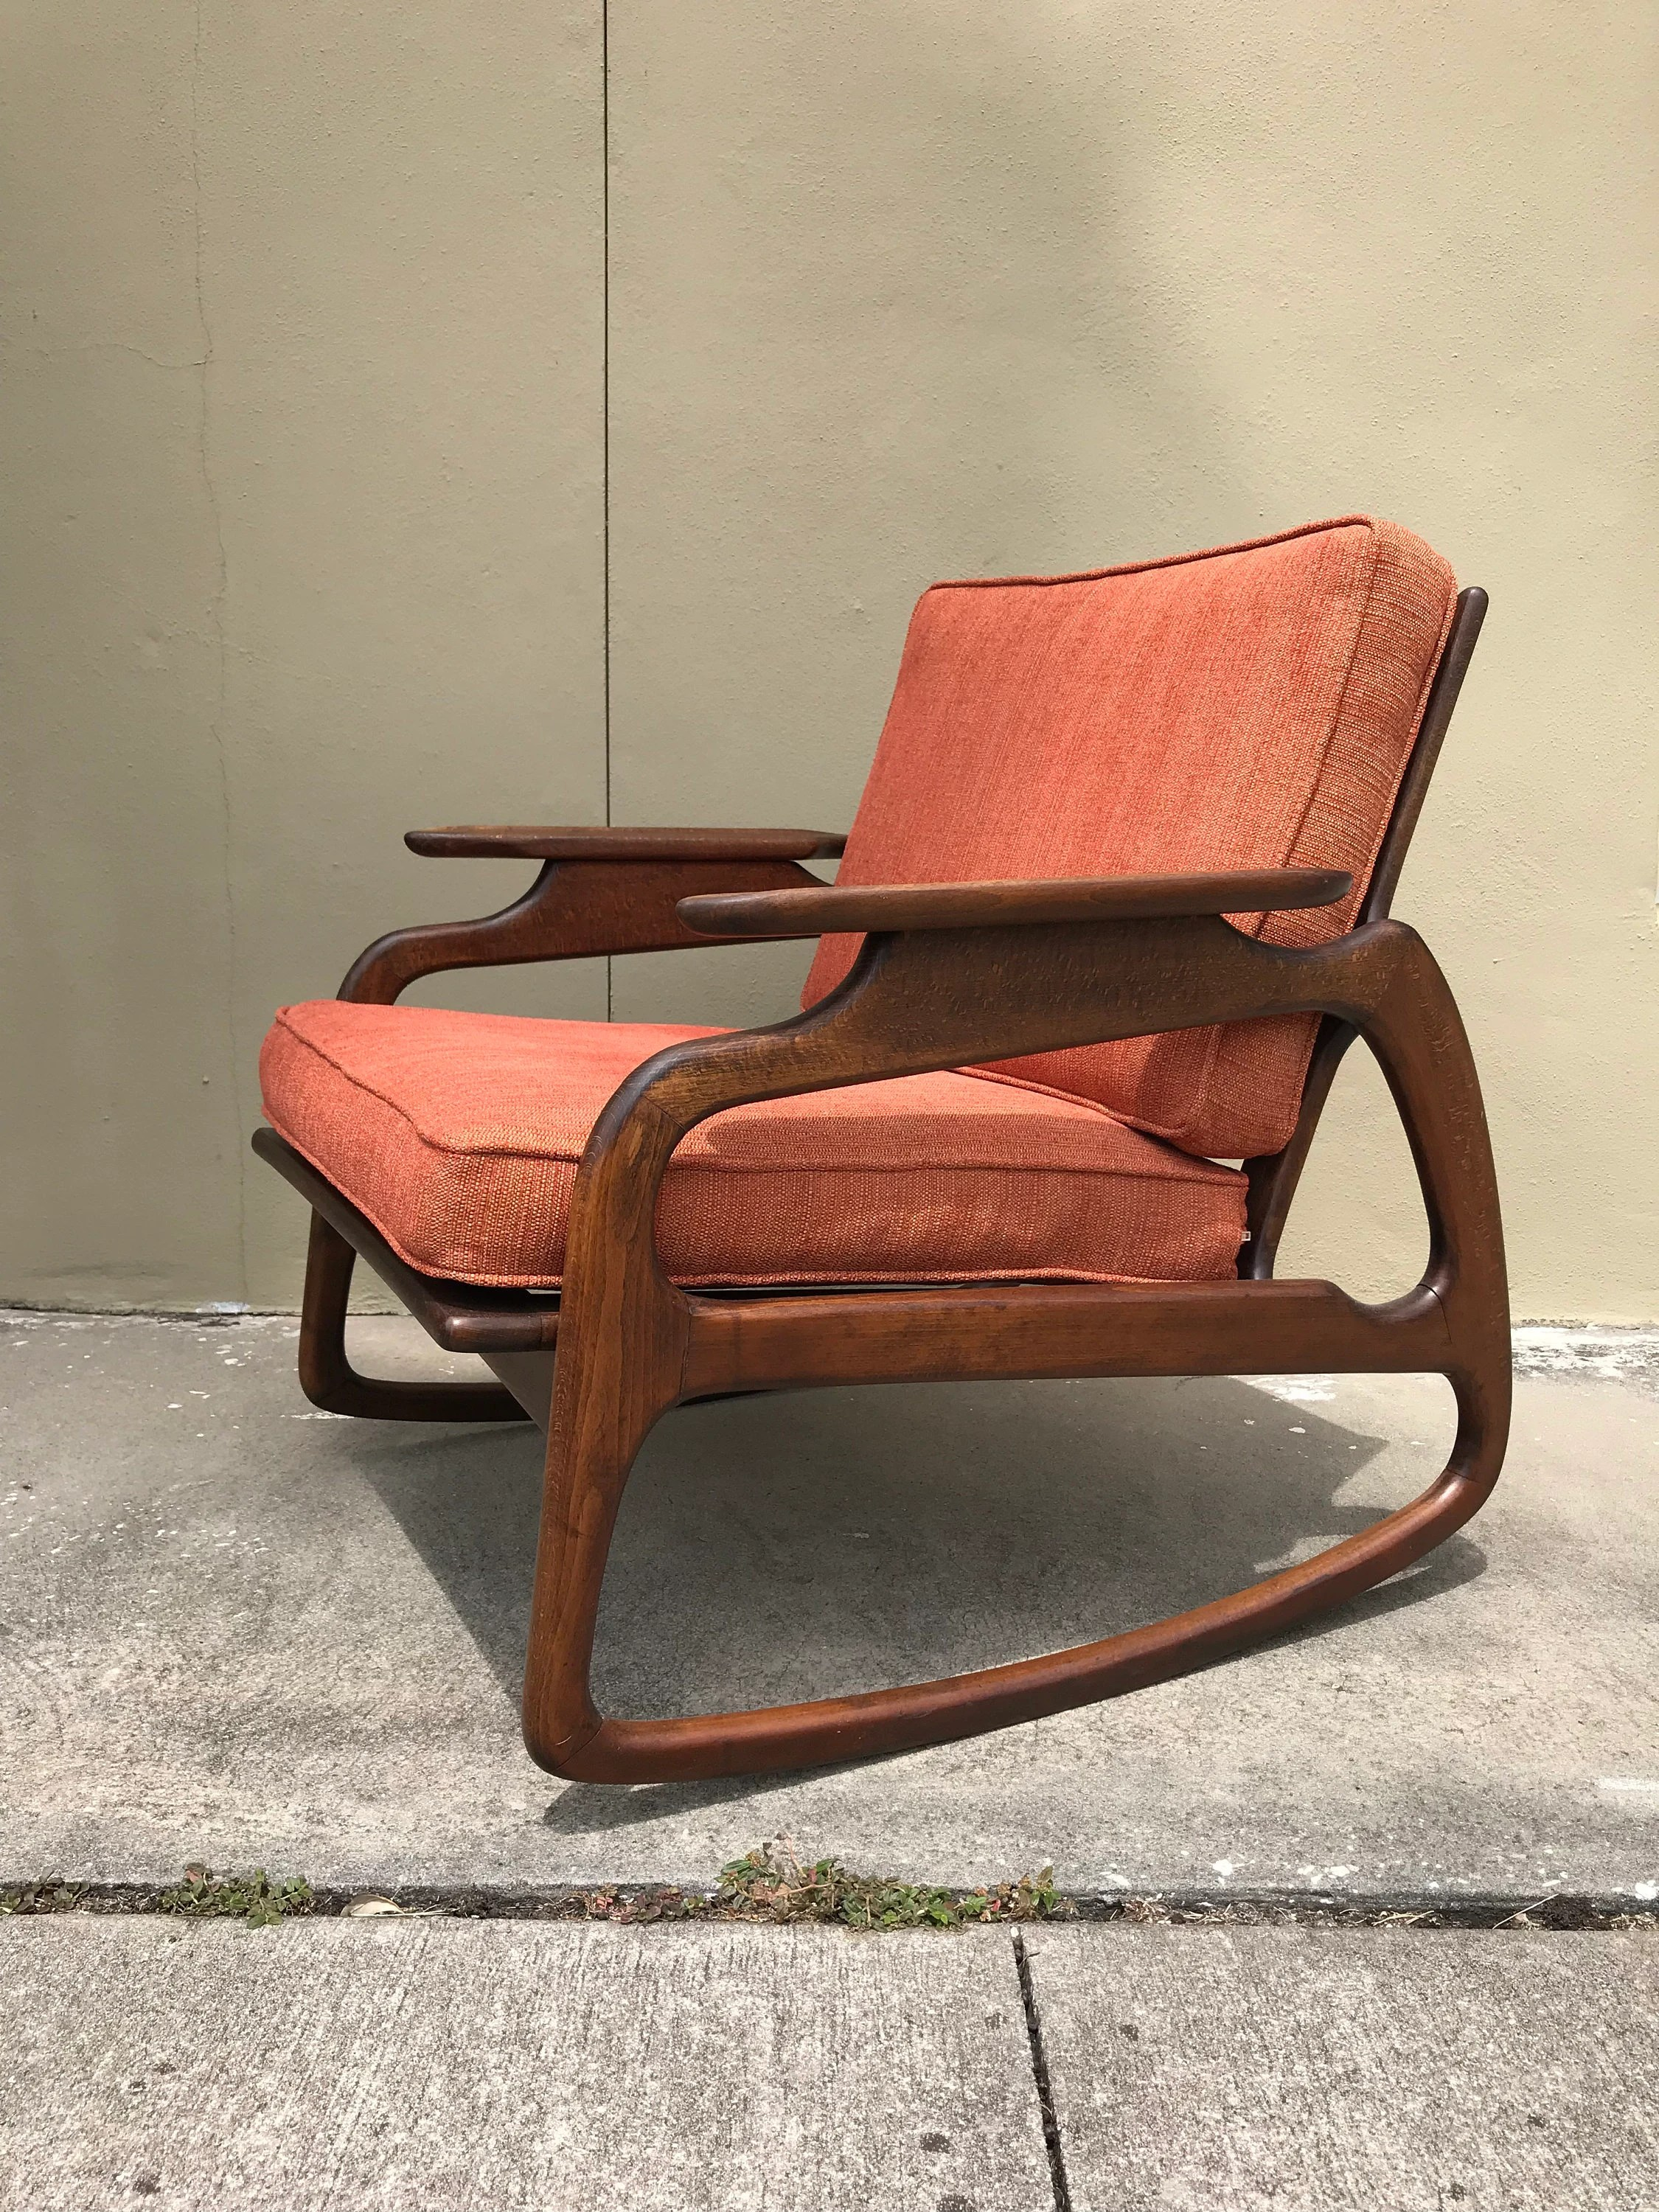 adrian pearsall rocking chair aluminium reclining garden chairs uk mid century modern attributed to etsy